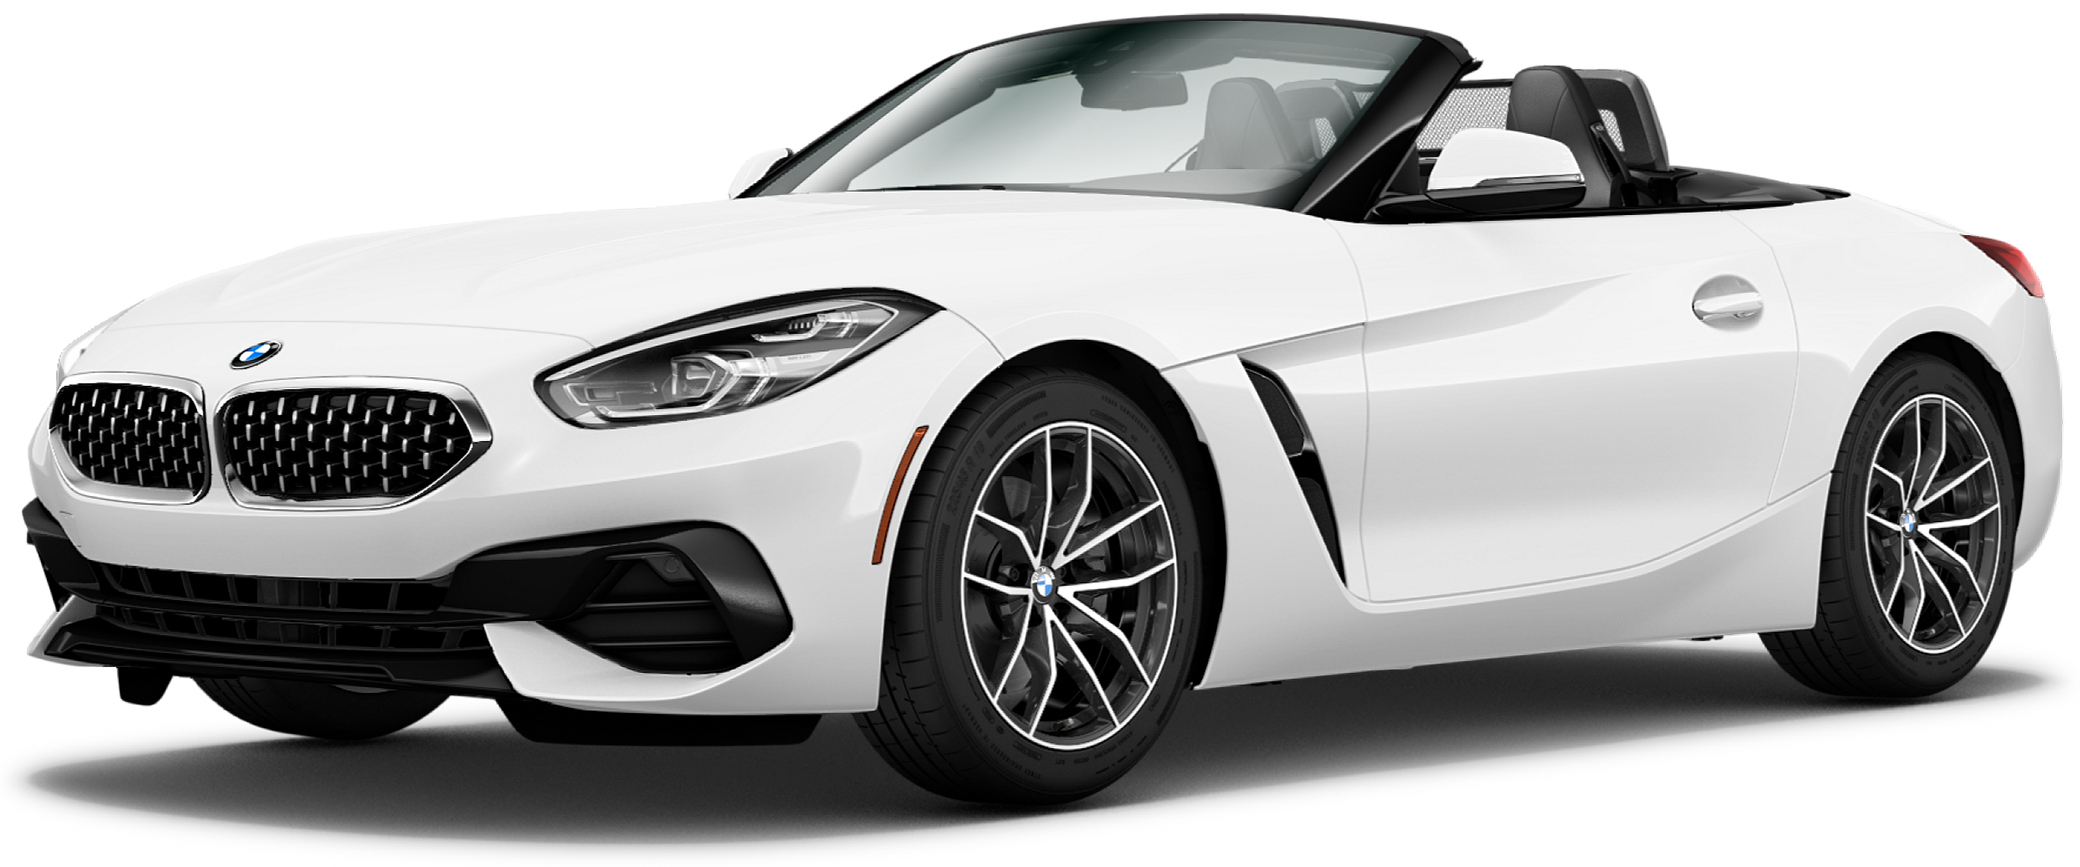 2021 bmw z4 incentives, specials & offers in rockland ma